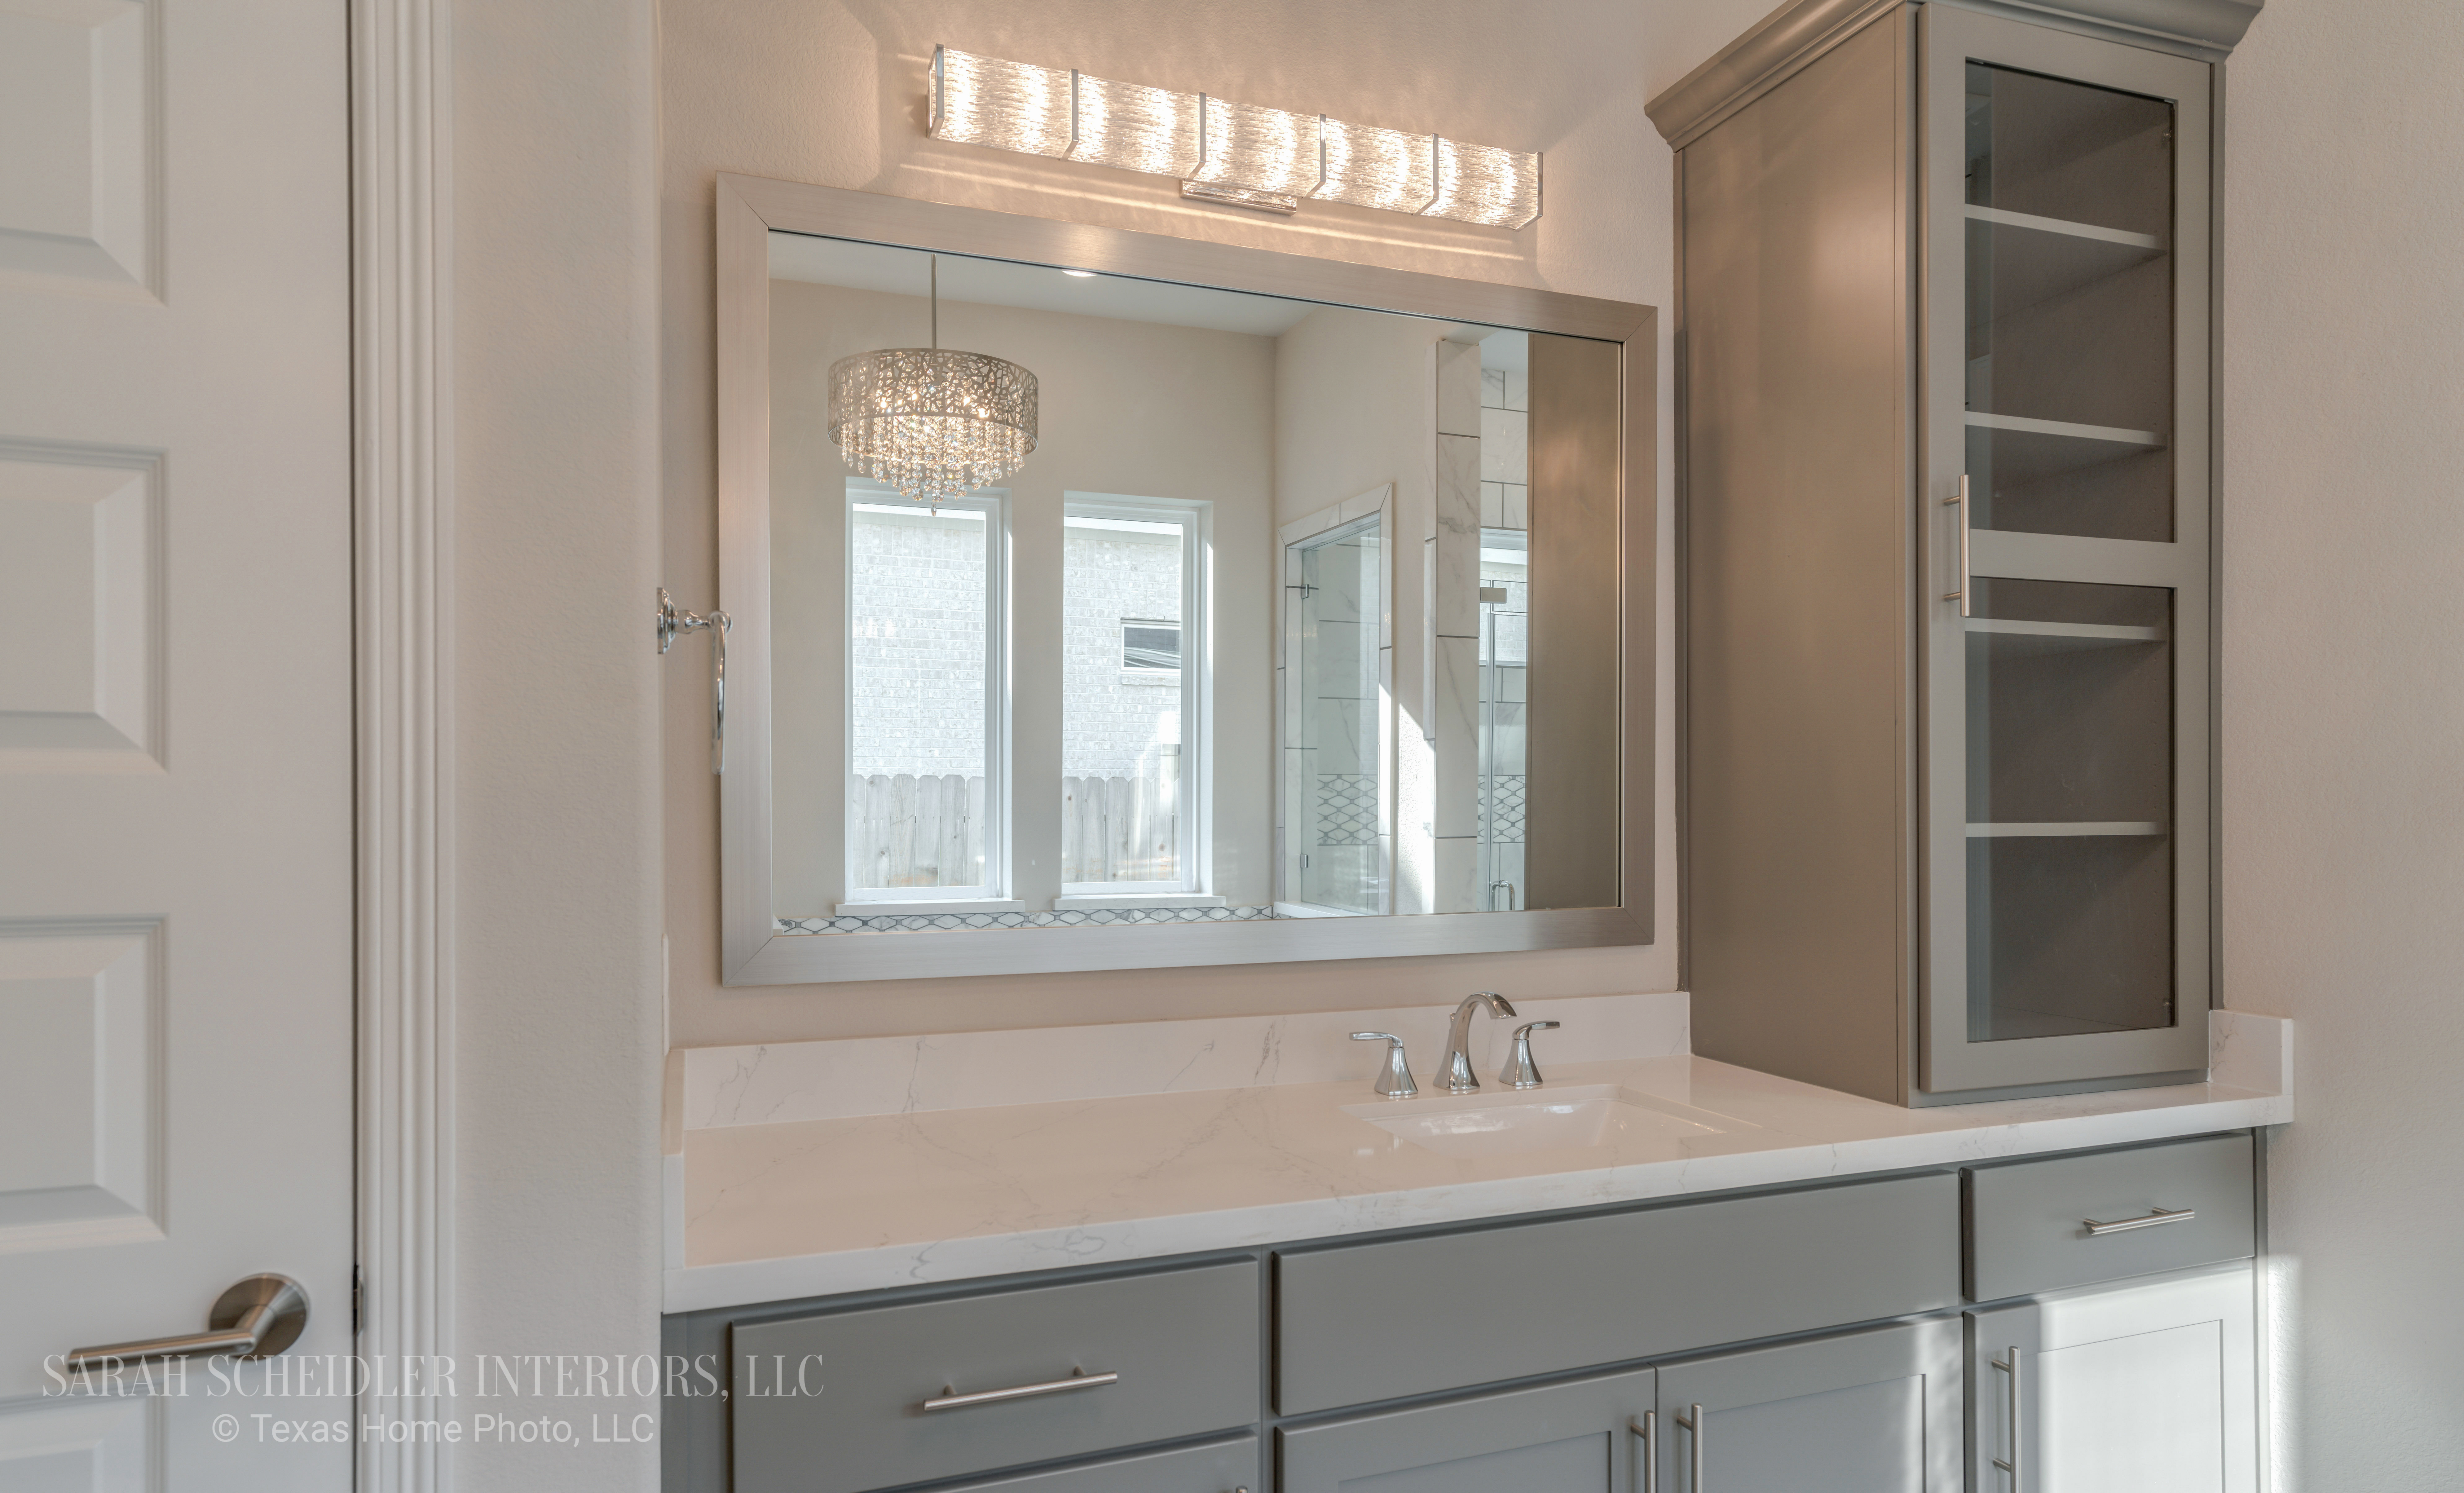 White and Grey Primary Bathroom Vanity (Hers) with Silestone Quartz Countertops, Chrome Finishes, and Crystal Lighting